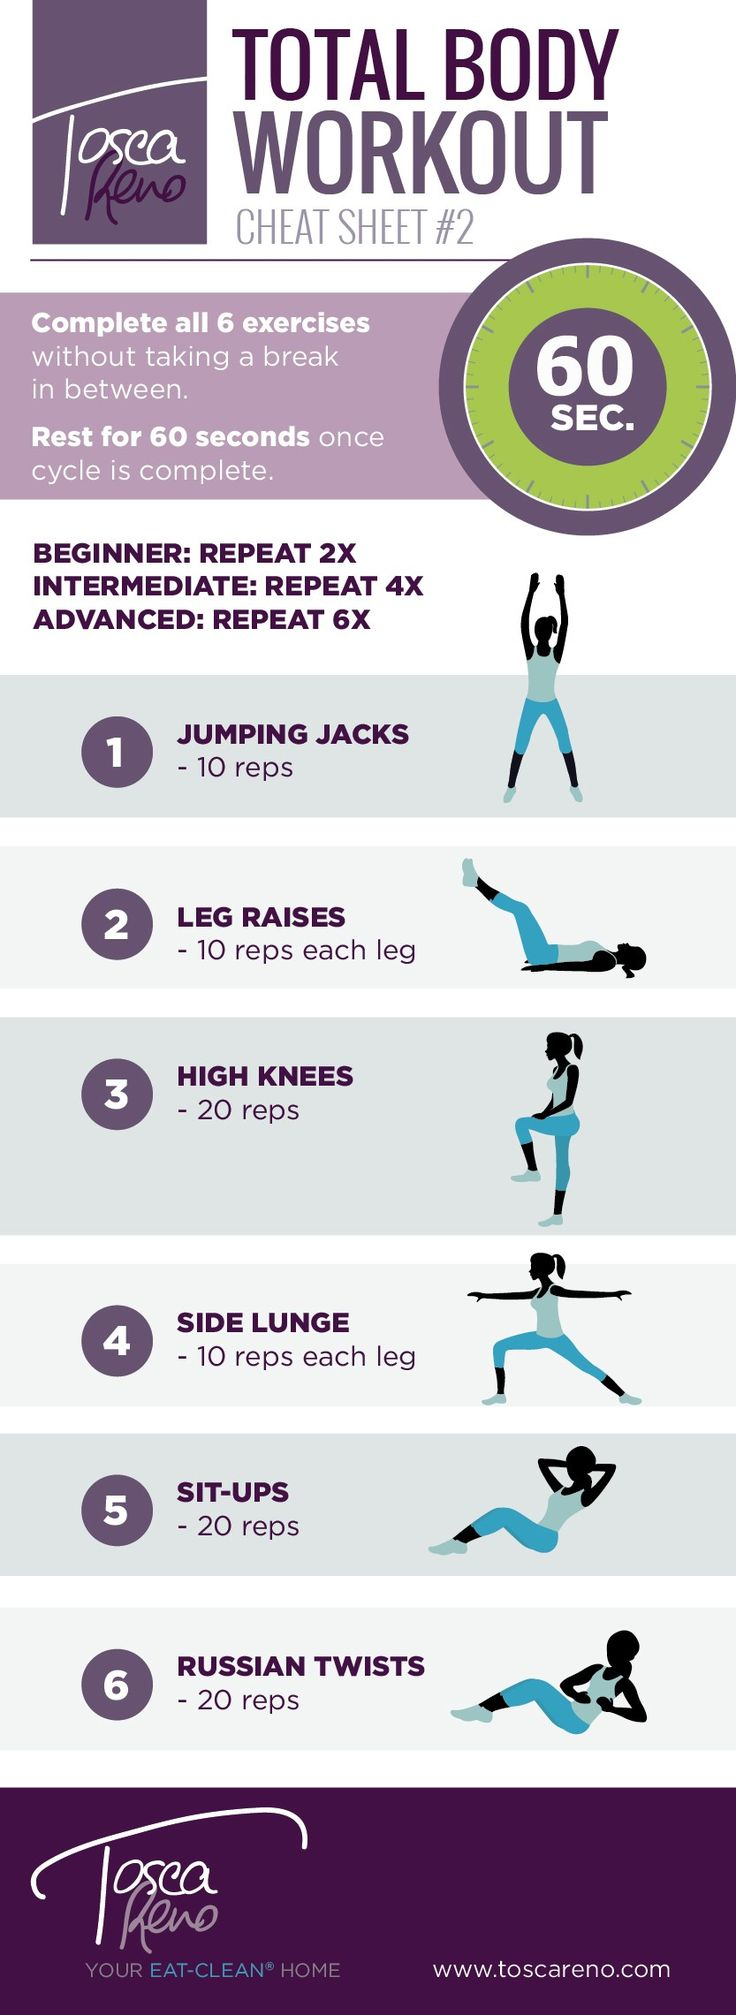 It's a glorious day to put your game face on, set a goal and go get it! Try this simple but effective Workout Cheat Sheet and get that heart pumping!